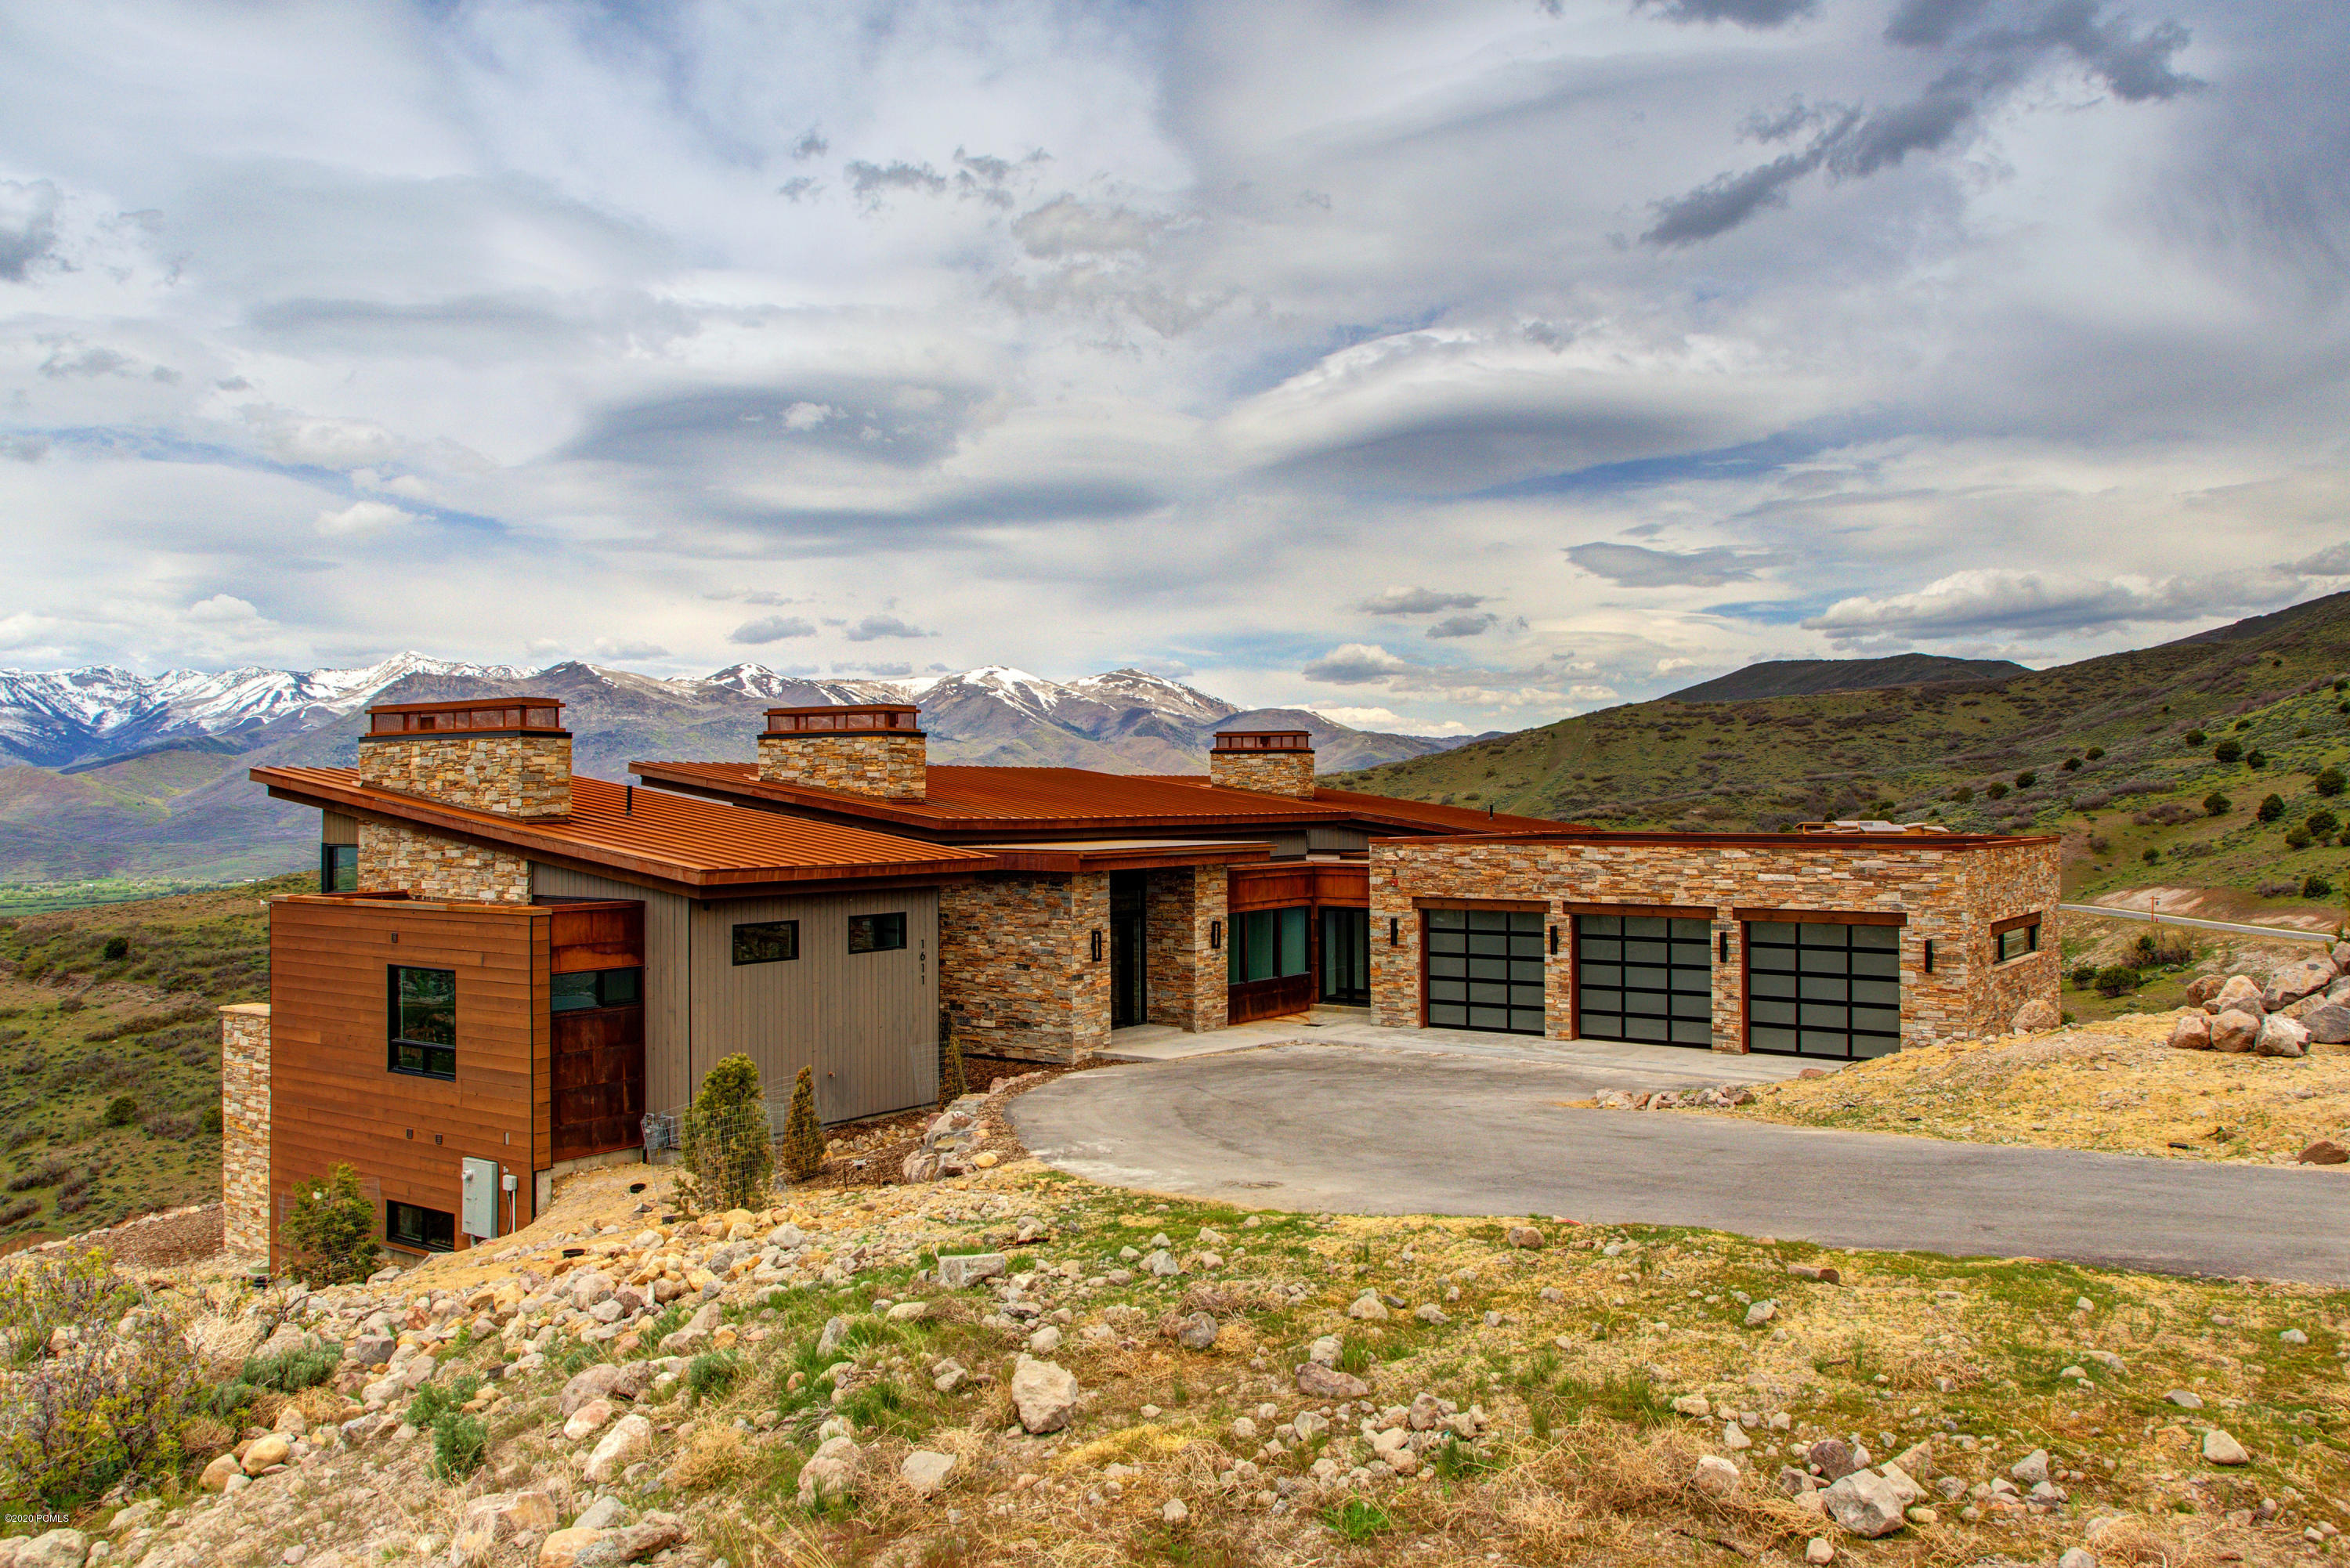 1611 A1 Peak Drive, Heber City, Utah 84032, 5 Bedrooms Bedrooms, ,Single Family,For Sale,A1 Peak,12002842